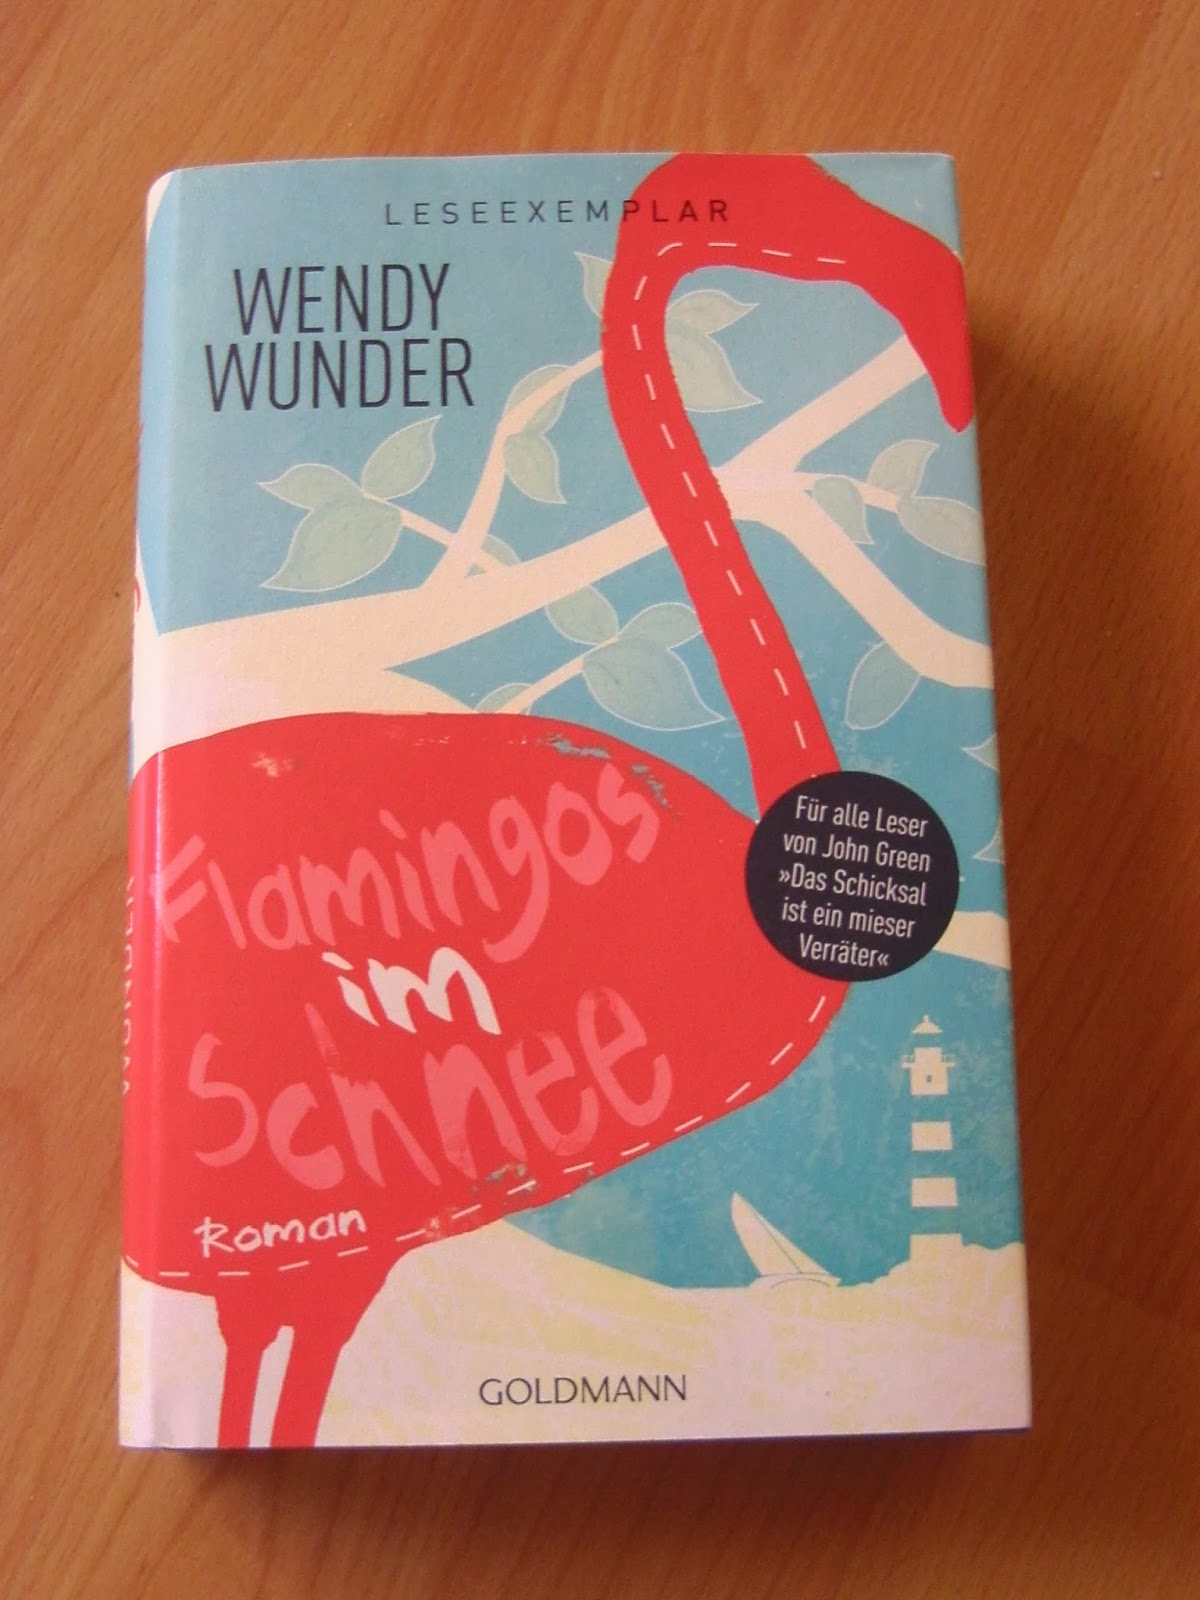 http://www.amazon.de/Flamingos-im-Schnee-Wendy-Wunder/dp/3442313236/ref=sr_1_1?s=books&ie=UTF8&qid=1391198304&sr=1-1&keywords=flamingos+im+schnee